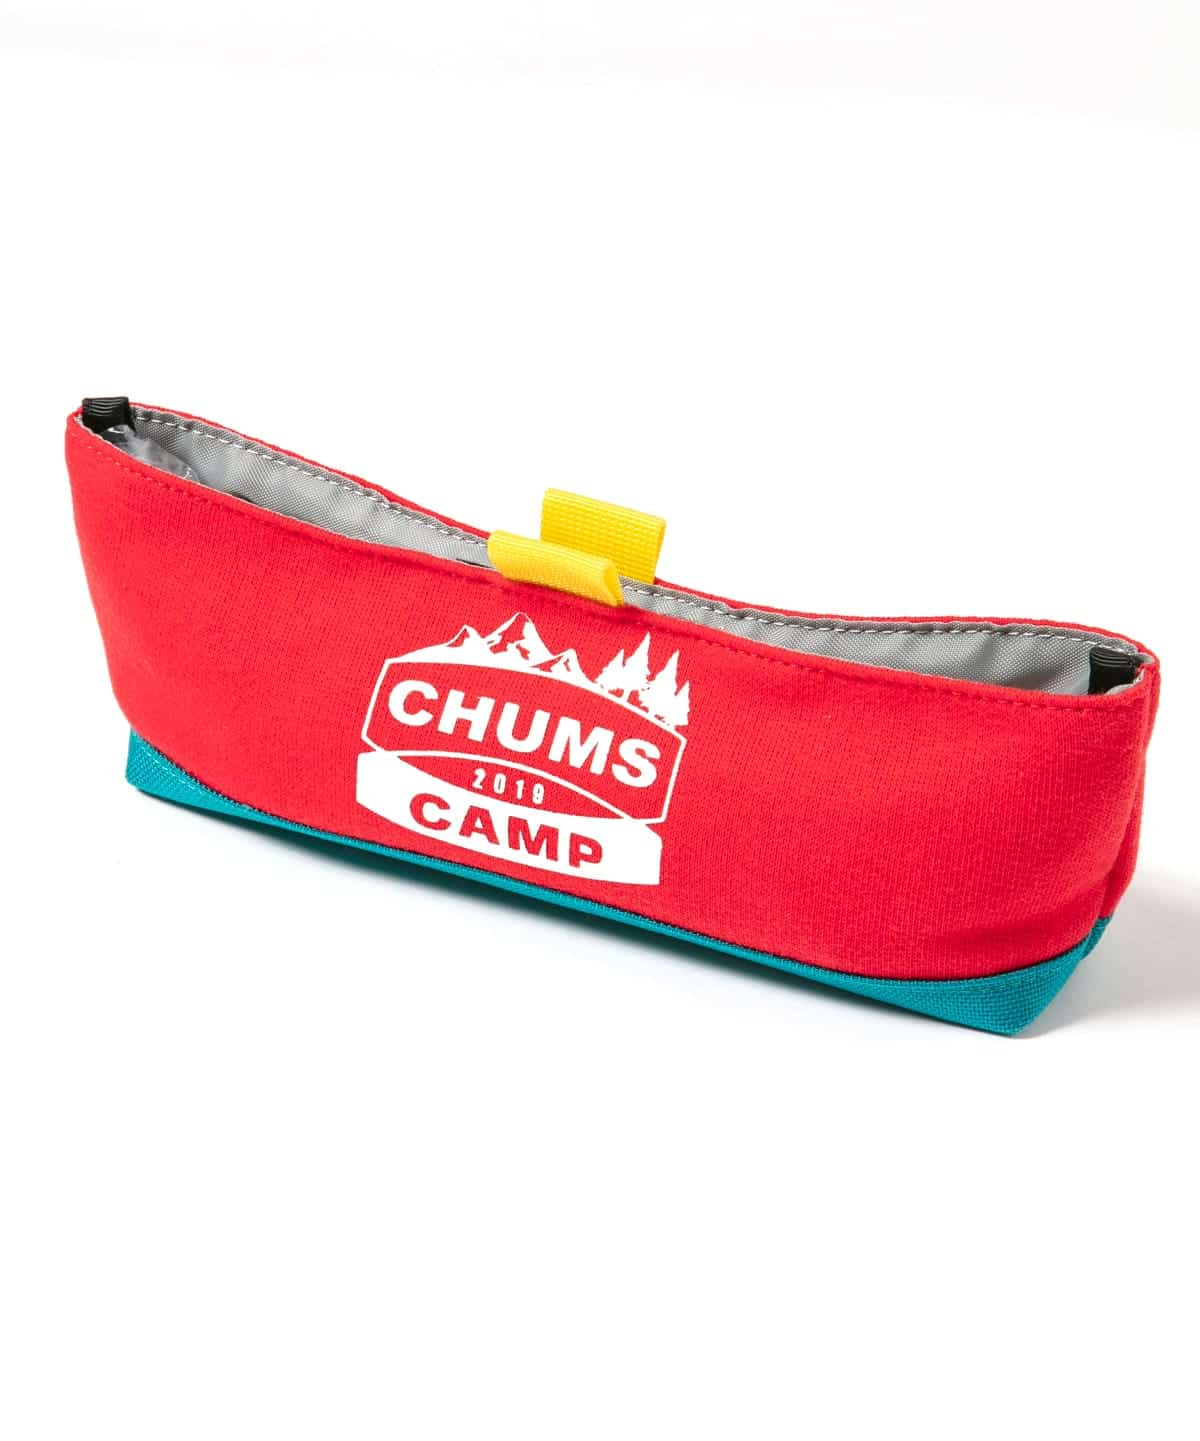 CHUMS CAMP 2019 Cutlery Case S/N(チャムスキャンプ2019カトラリーケーススウェットナイロン(ポーチ|ケース))